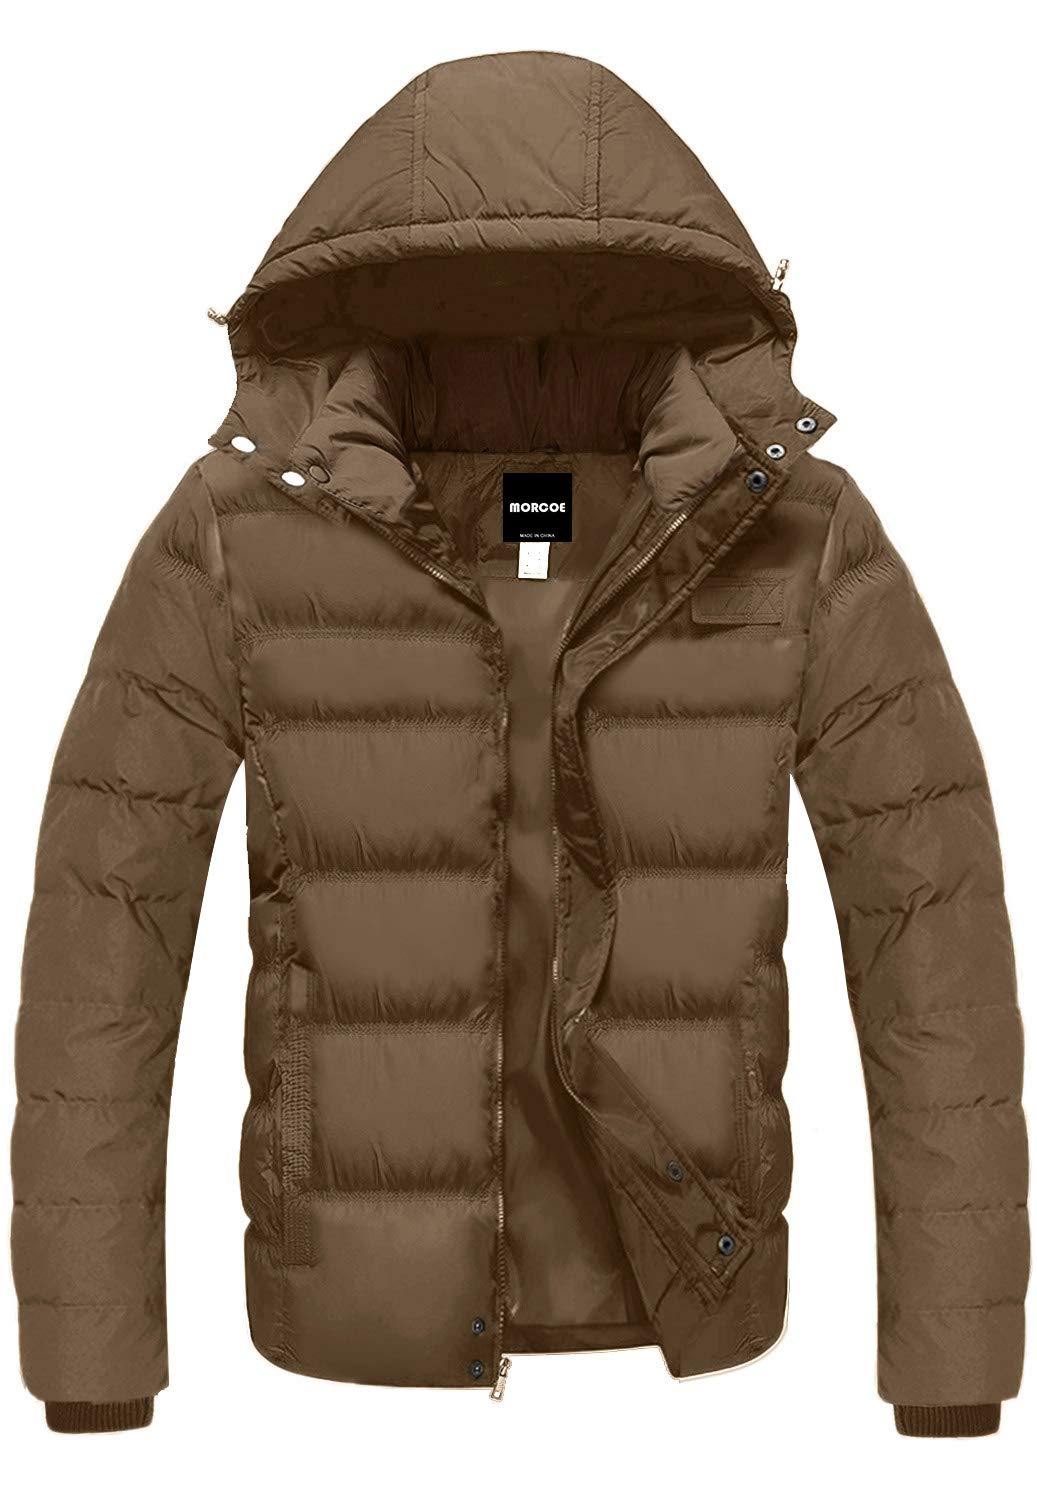 MORCOE Men's Winter Quilted Coat Outdoor Puffer Jacket Thicken Outerwear Windproof Parkas with Removable Hood